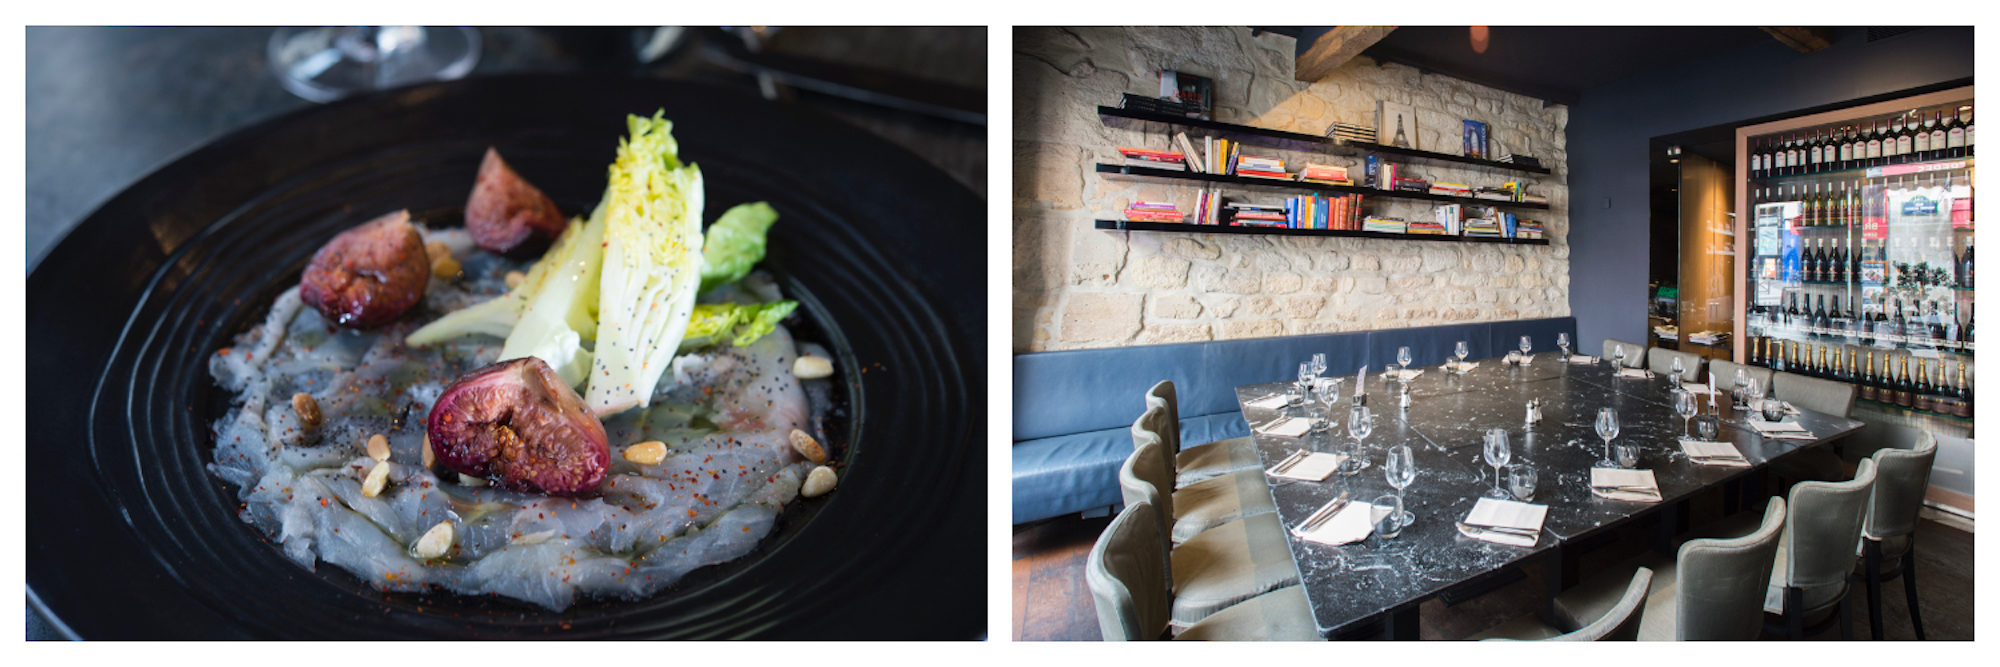 Fish carpaccio and fresh figs (left) at the cozy Atelier Maitre Albert with a large private dining space (right), one of our favorite restaurants on Paris' Left Bank